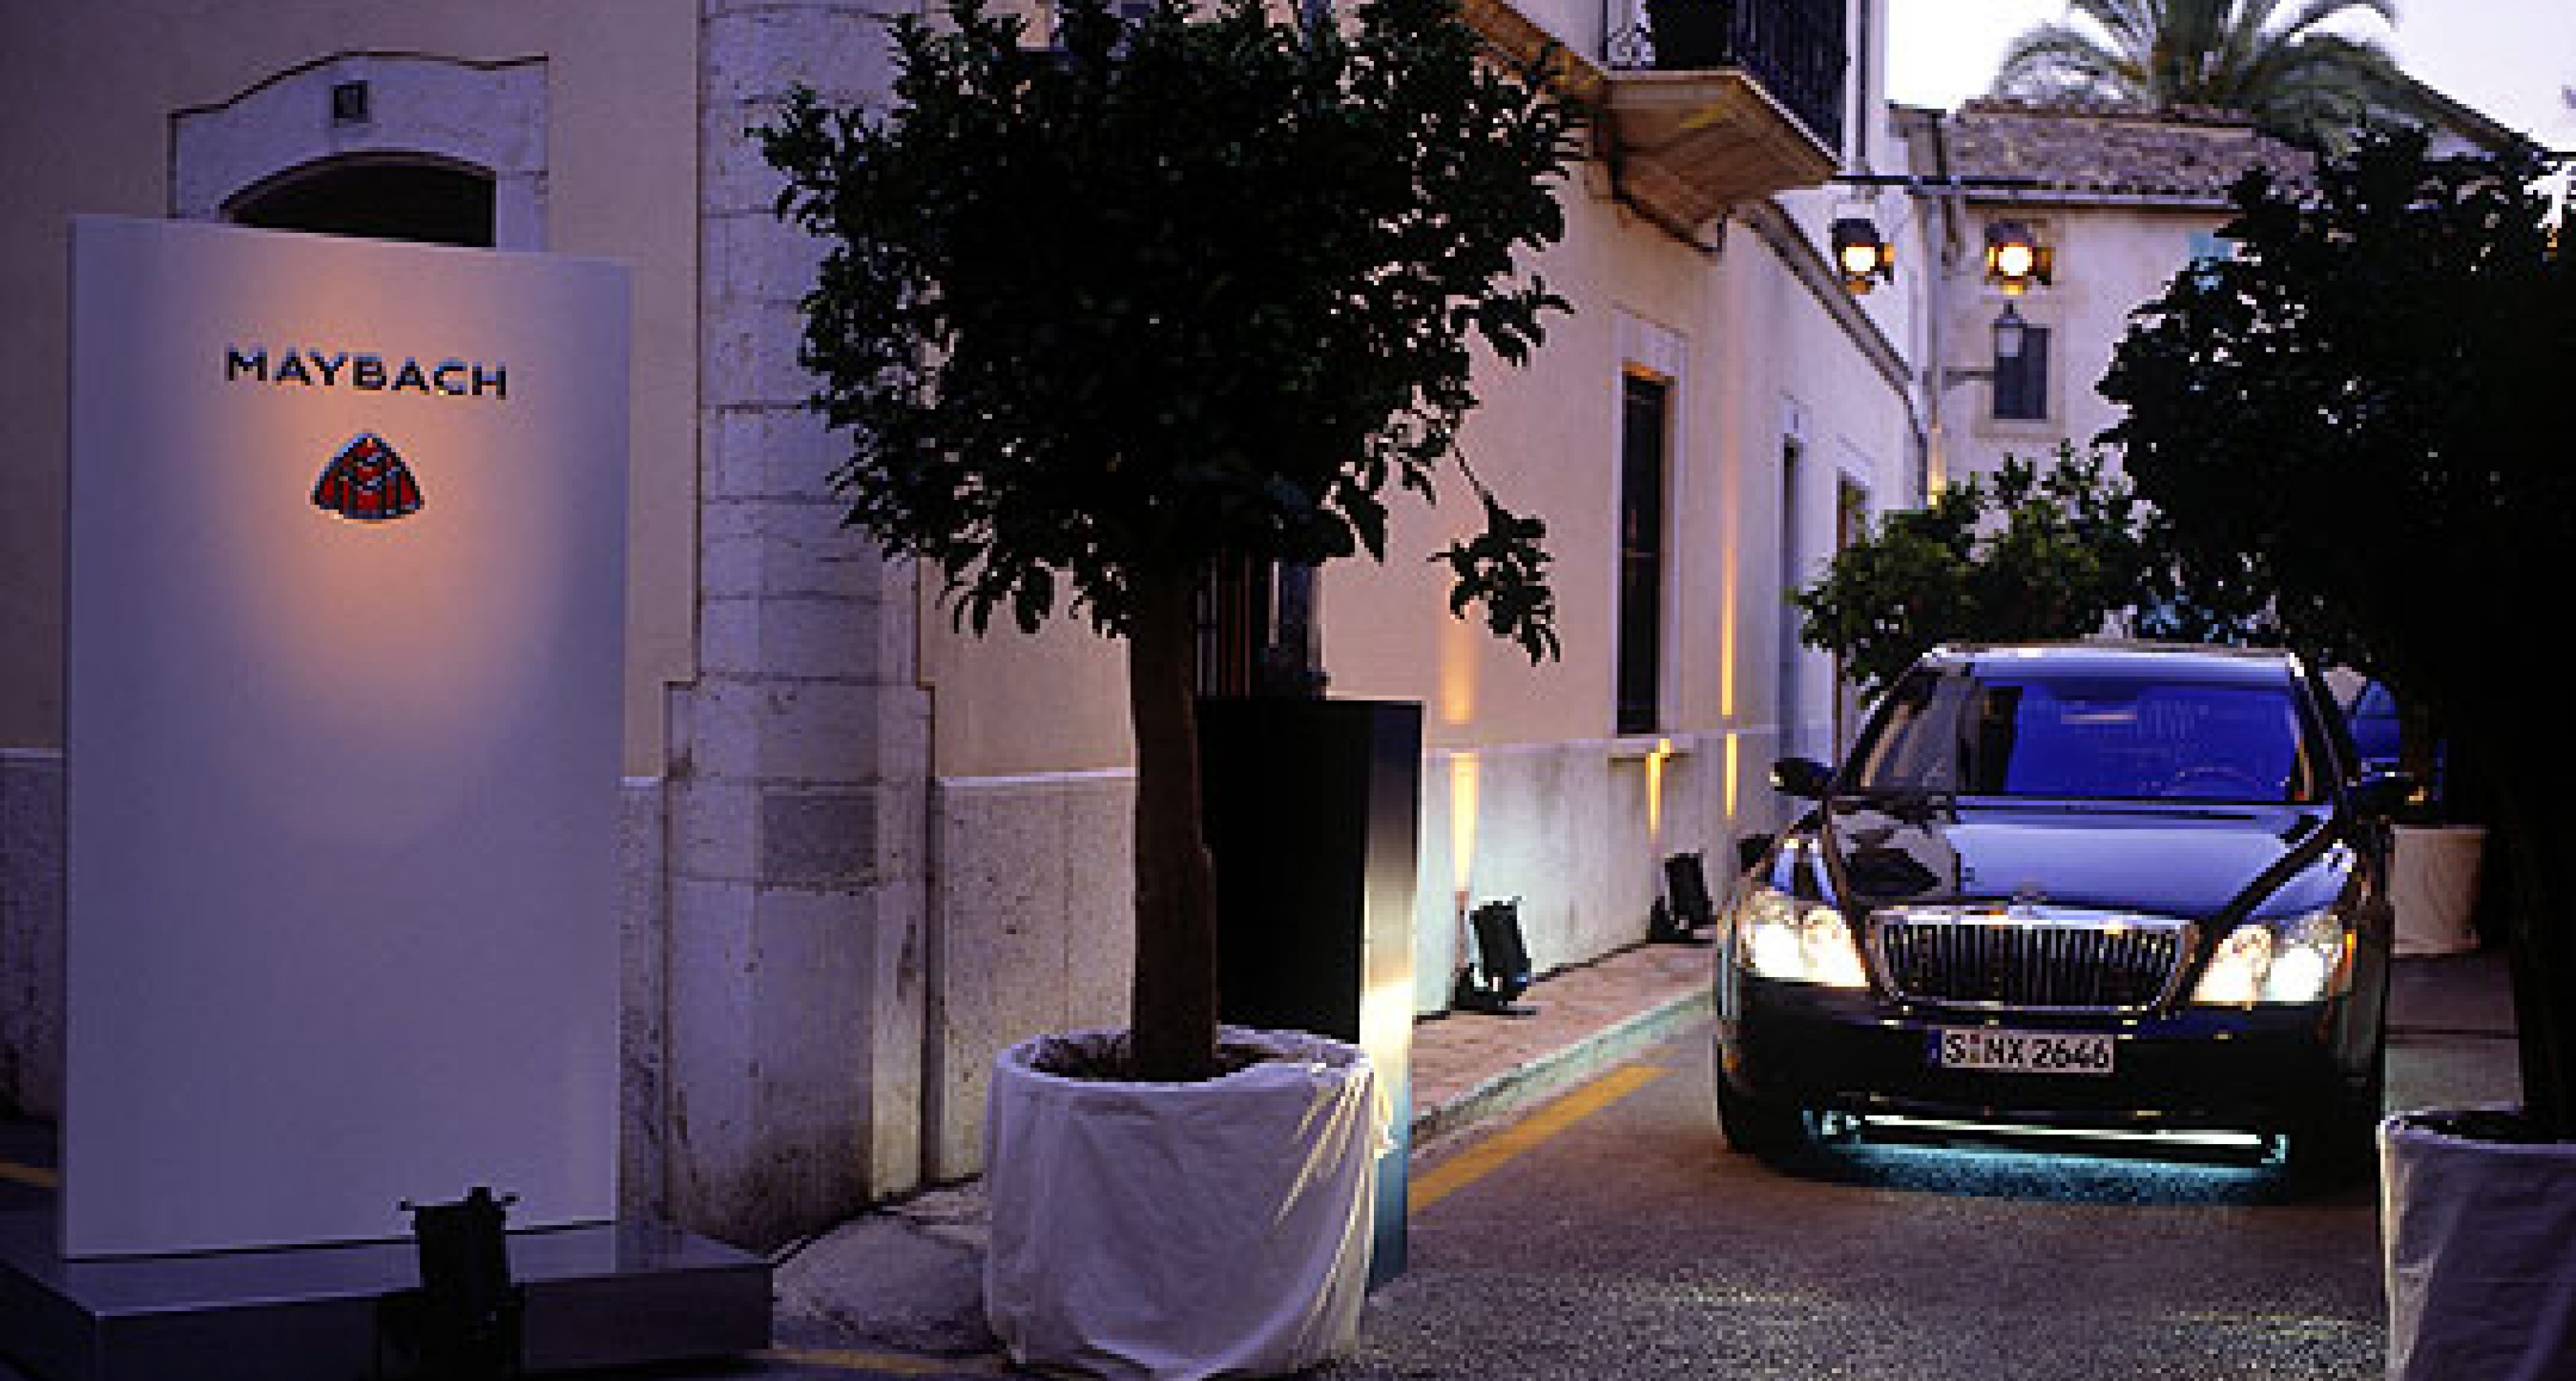 Maybach and UBS in partnership for Majorcan art exhibition